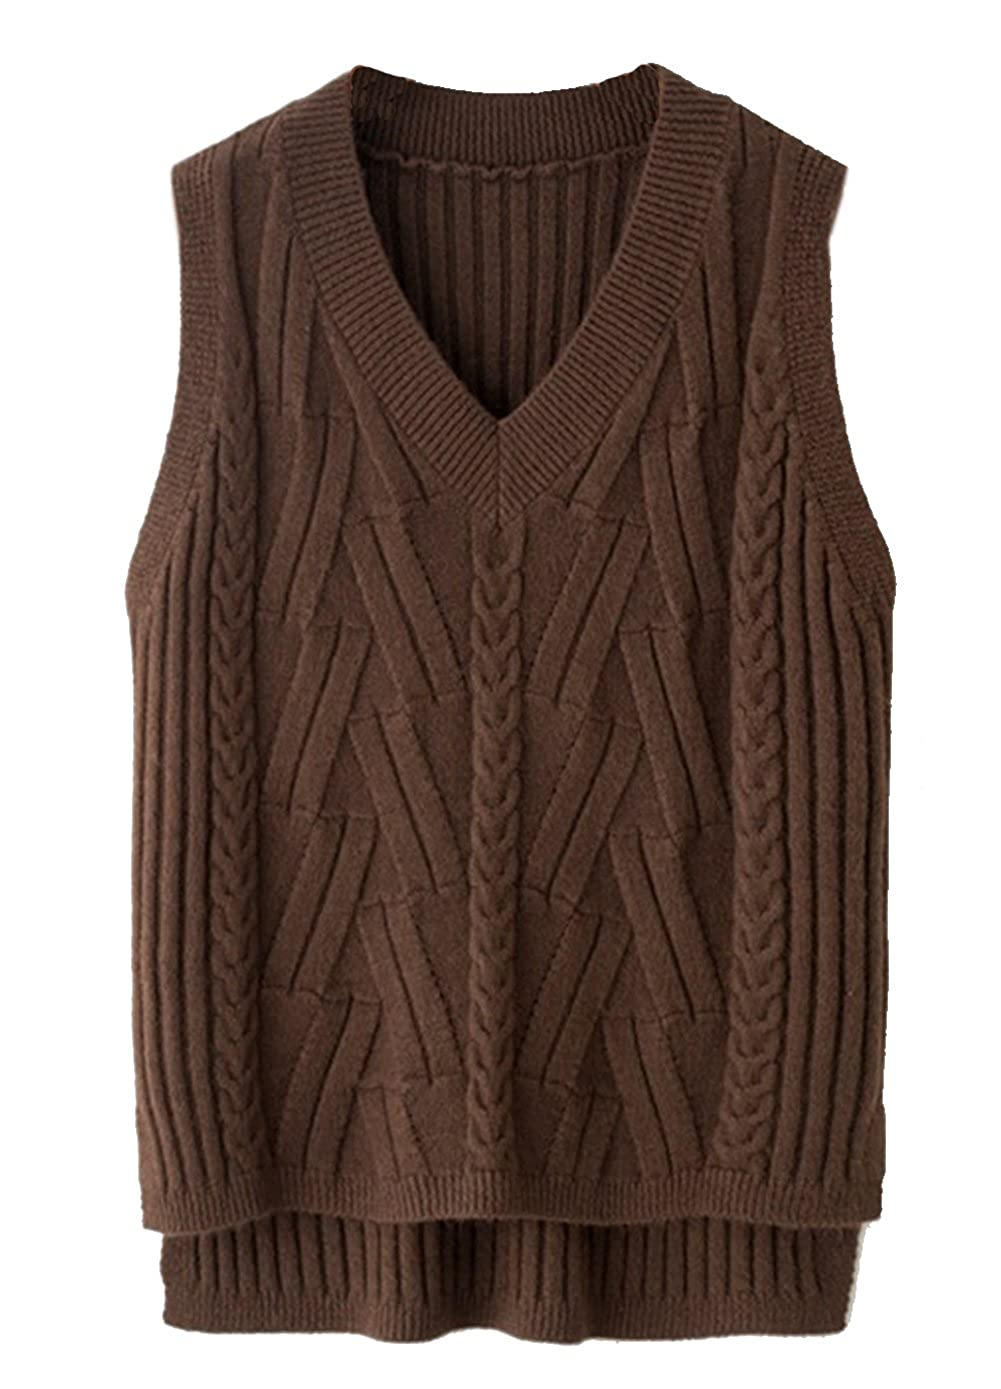 Hotmiss Womens Solid Color V Neck Sleeveless Pullover Knit Sweater Vest Tops